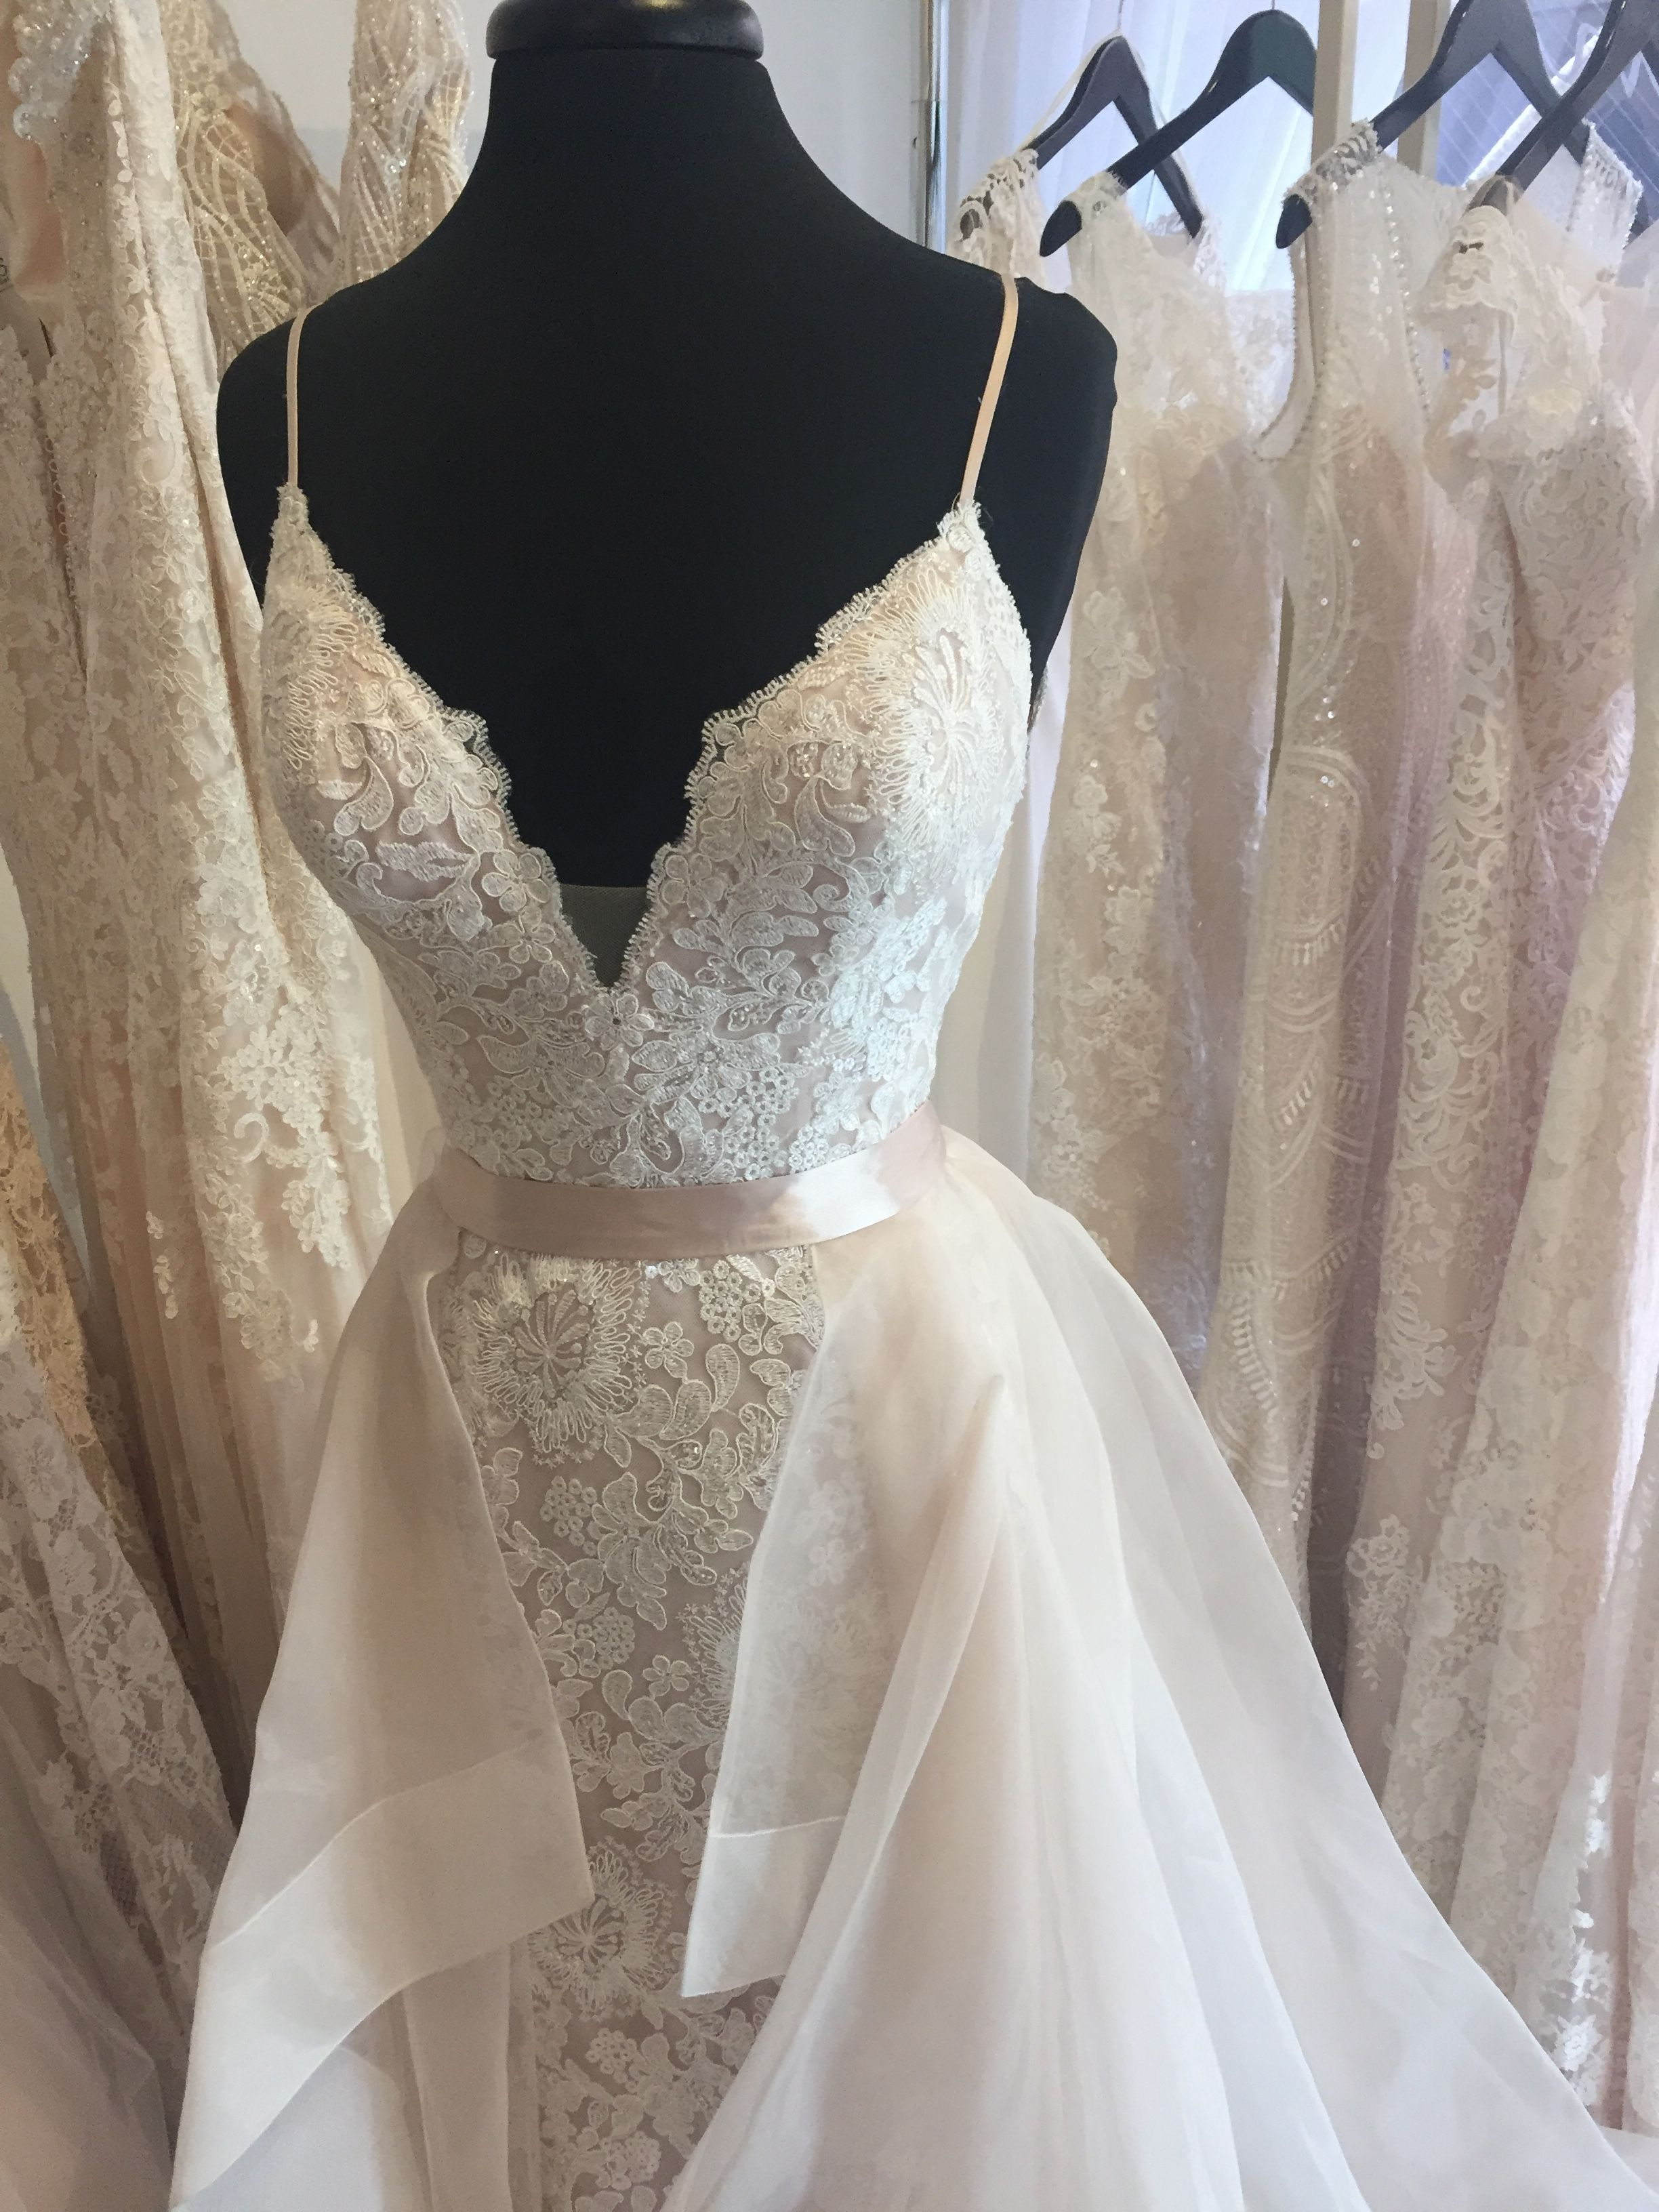 bc255107938f Eva by Eddy K Dreams, overskirt, lace, beaded, low back, sheath at our  location now for Trunk Show!